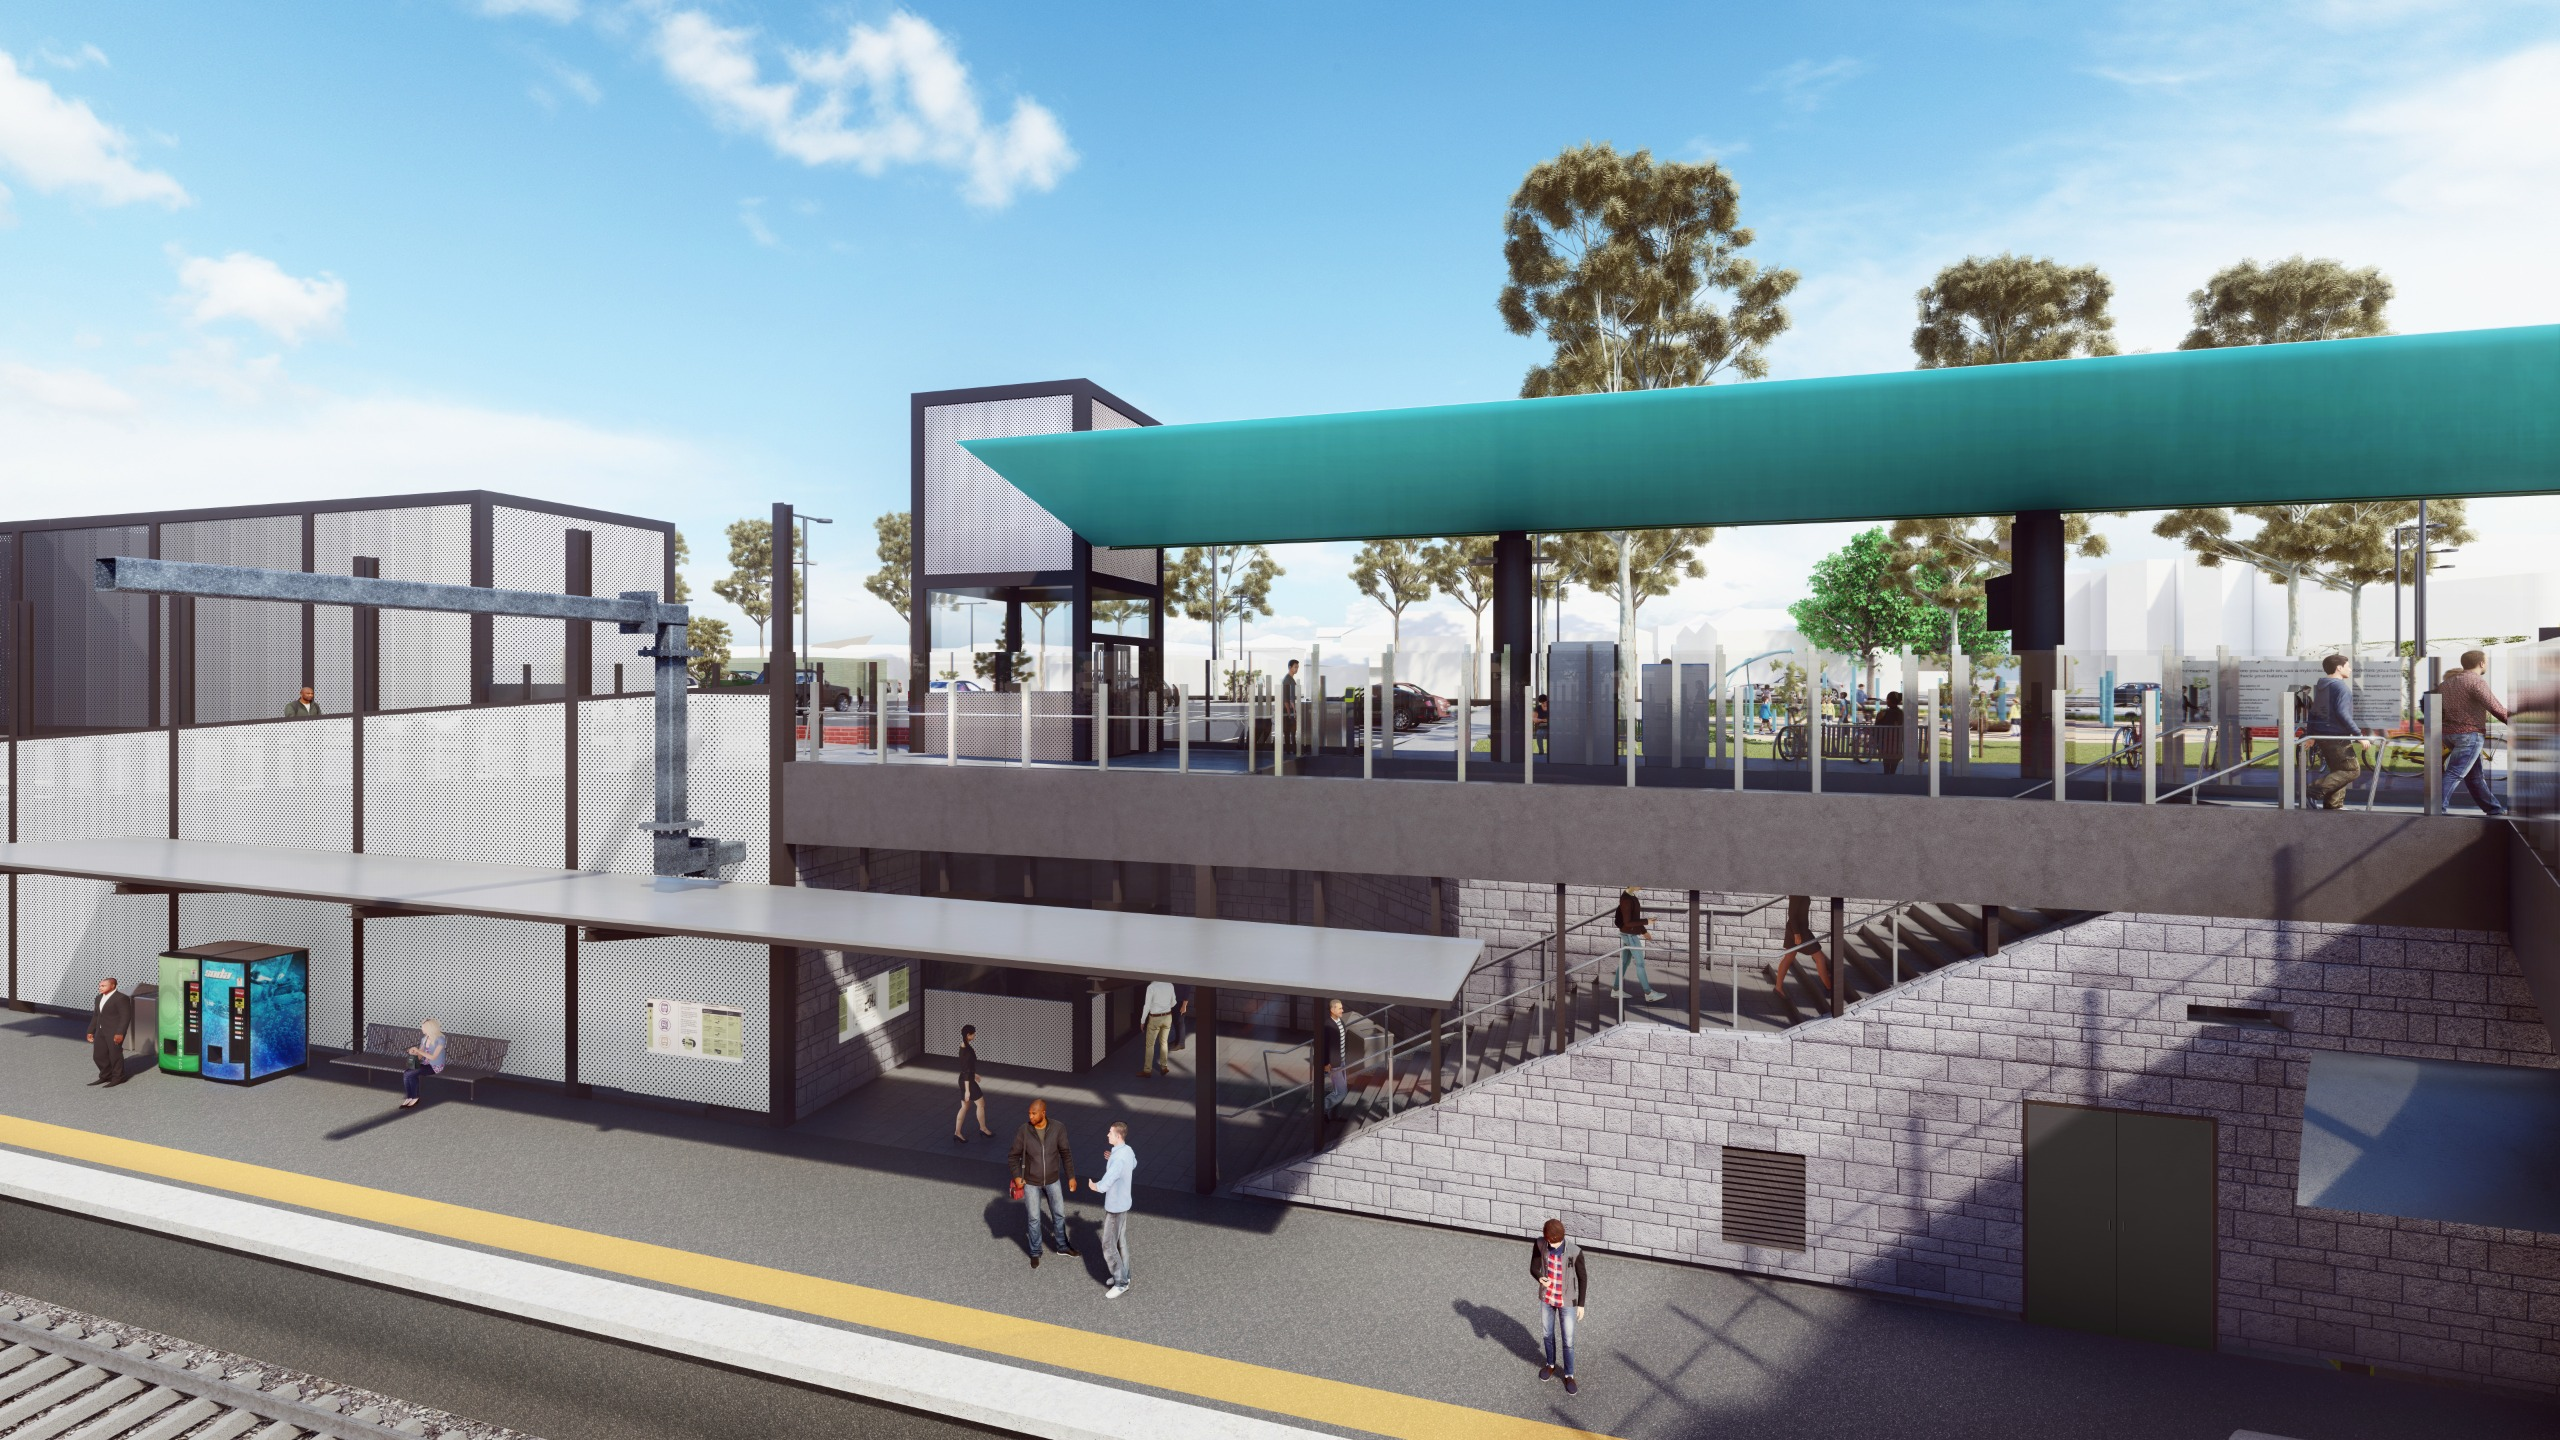 The new lowered platforms will be accessed by lifts, ramps and stairs